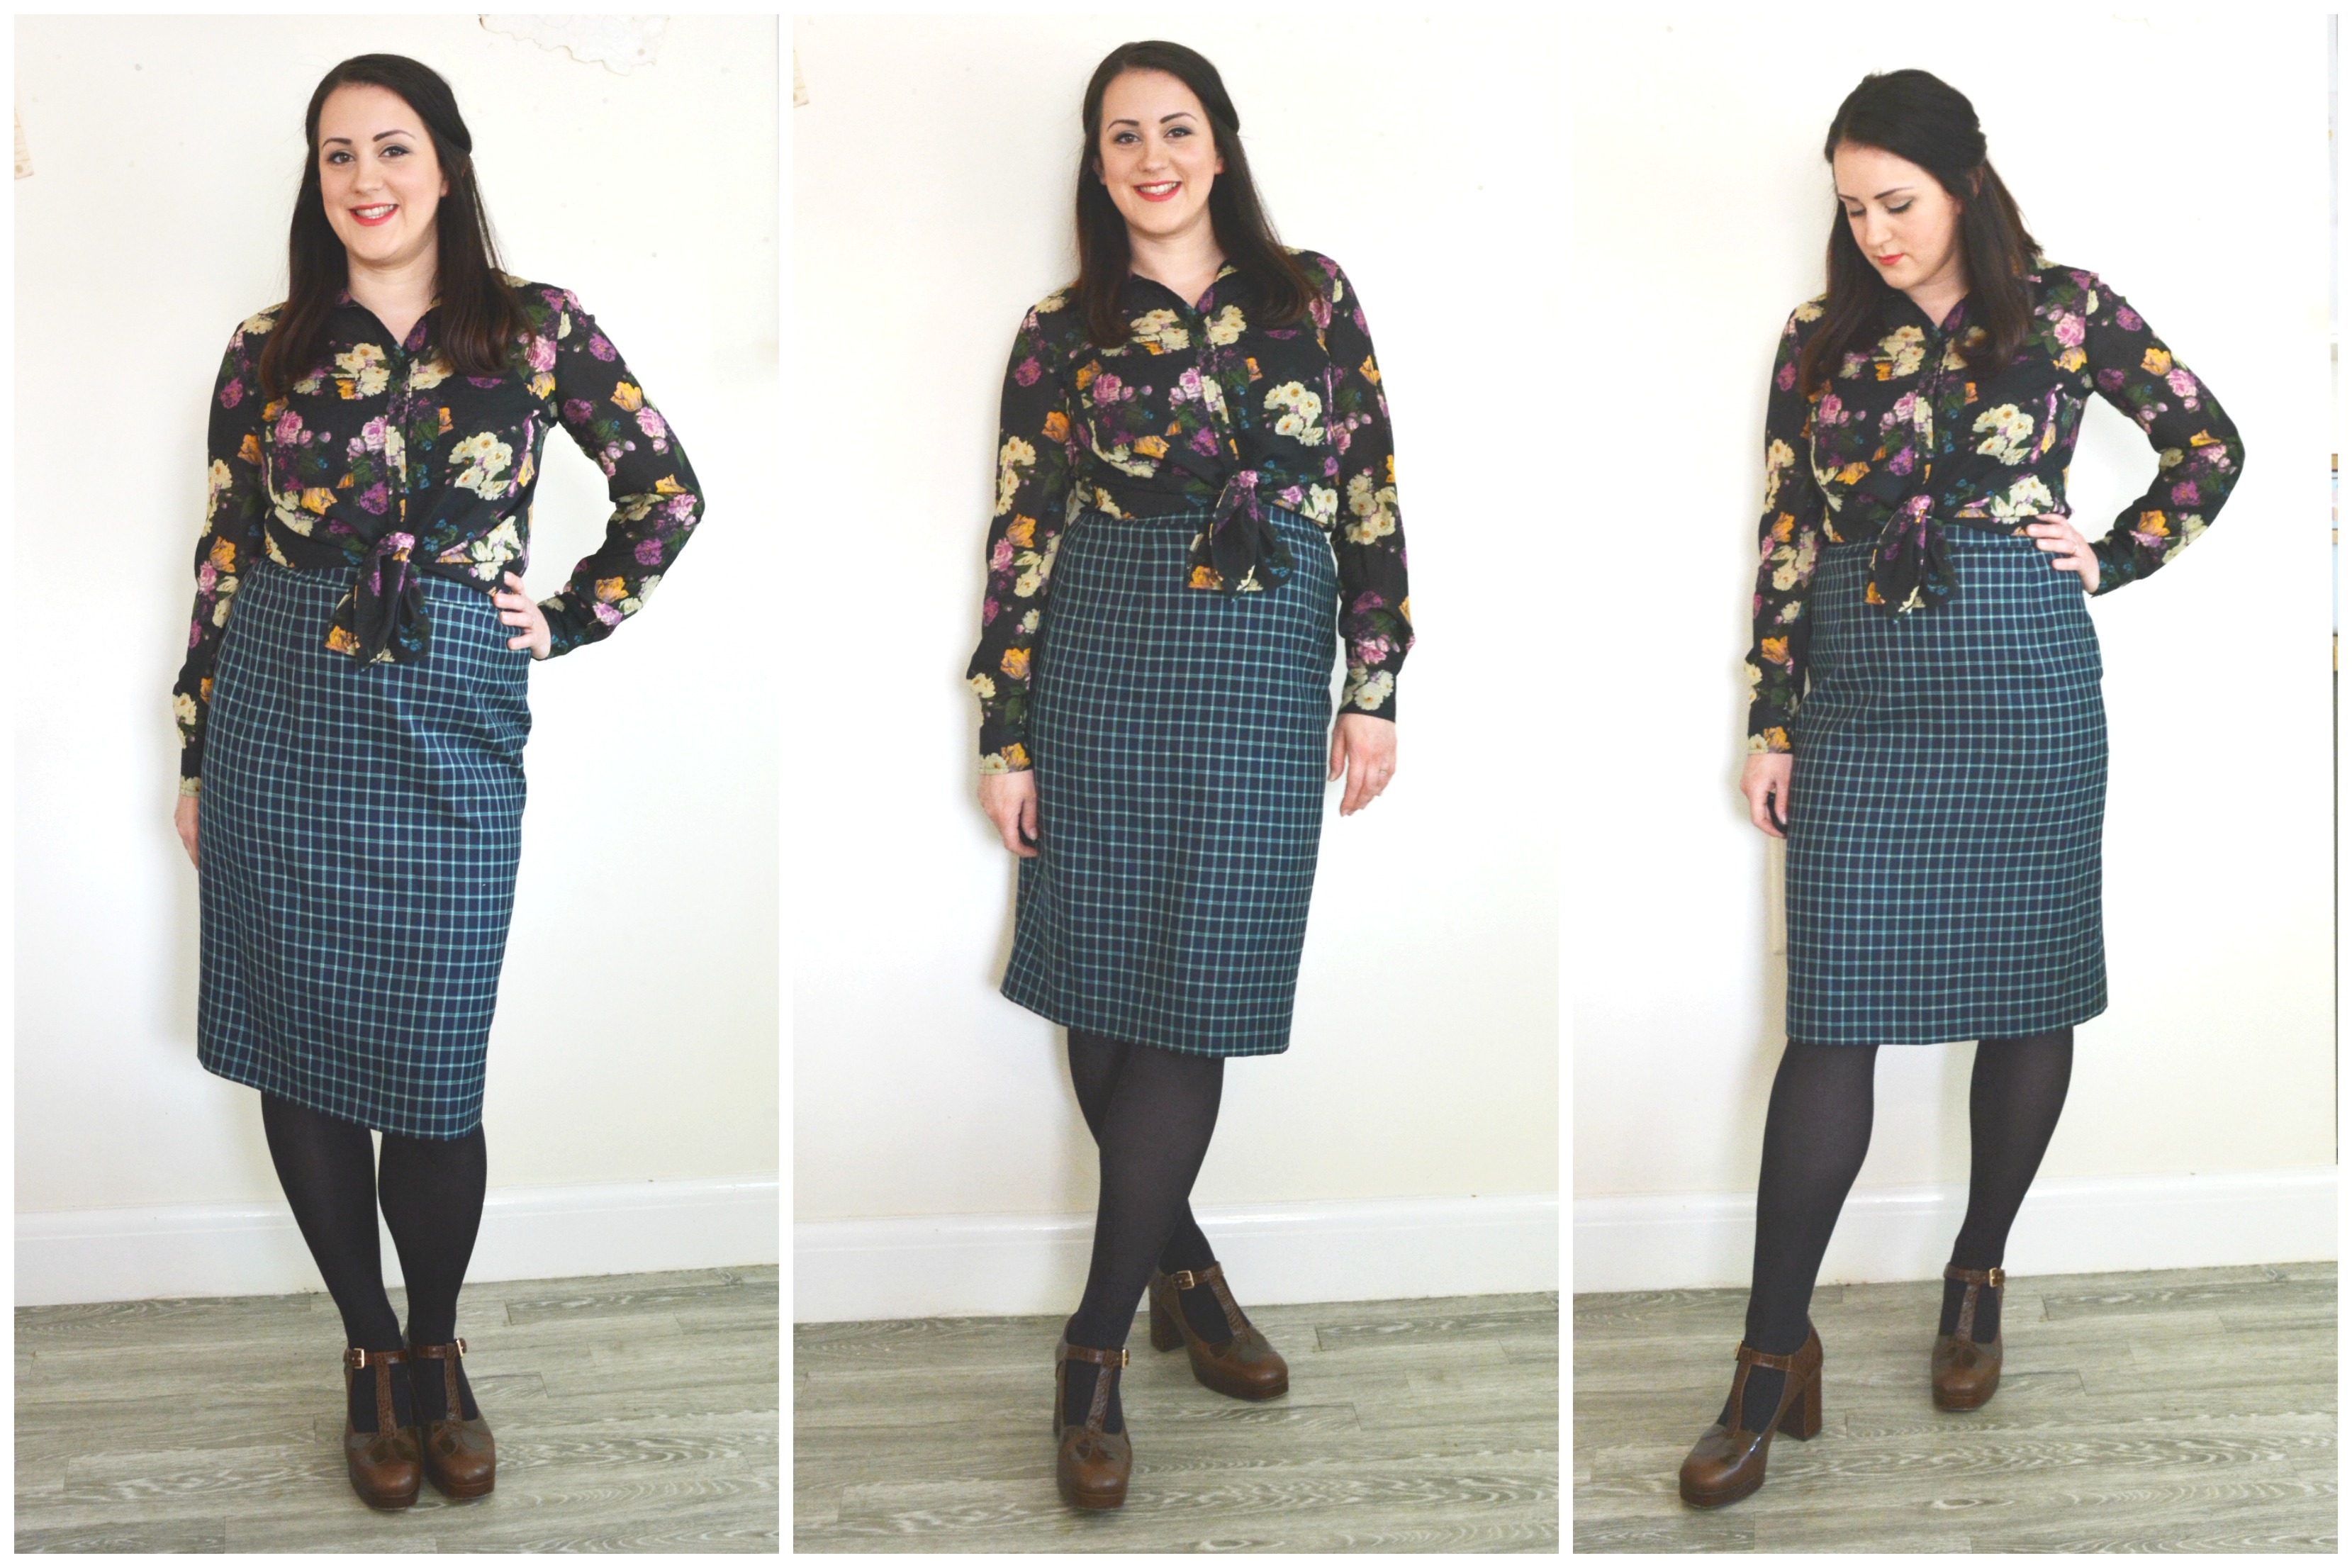 Charity Shop Pencil skirt and Floral Blouse